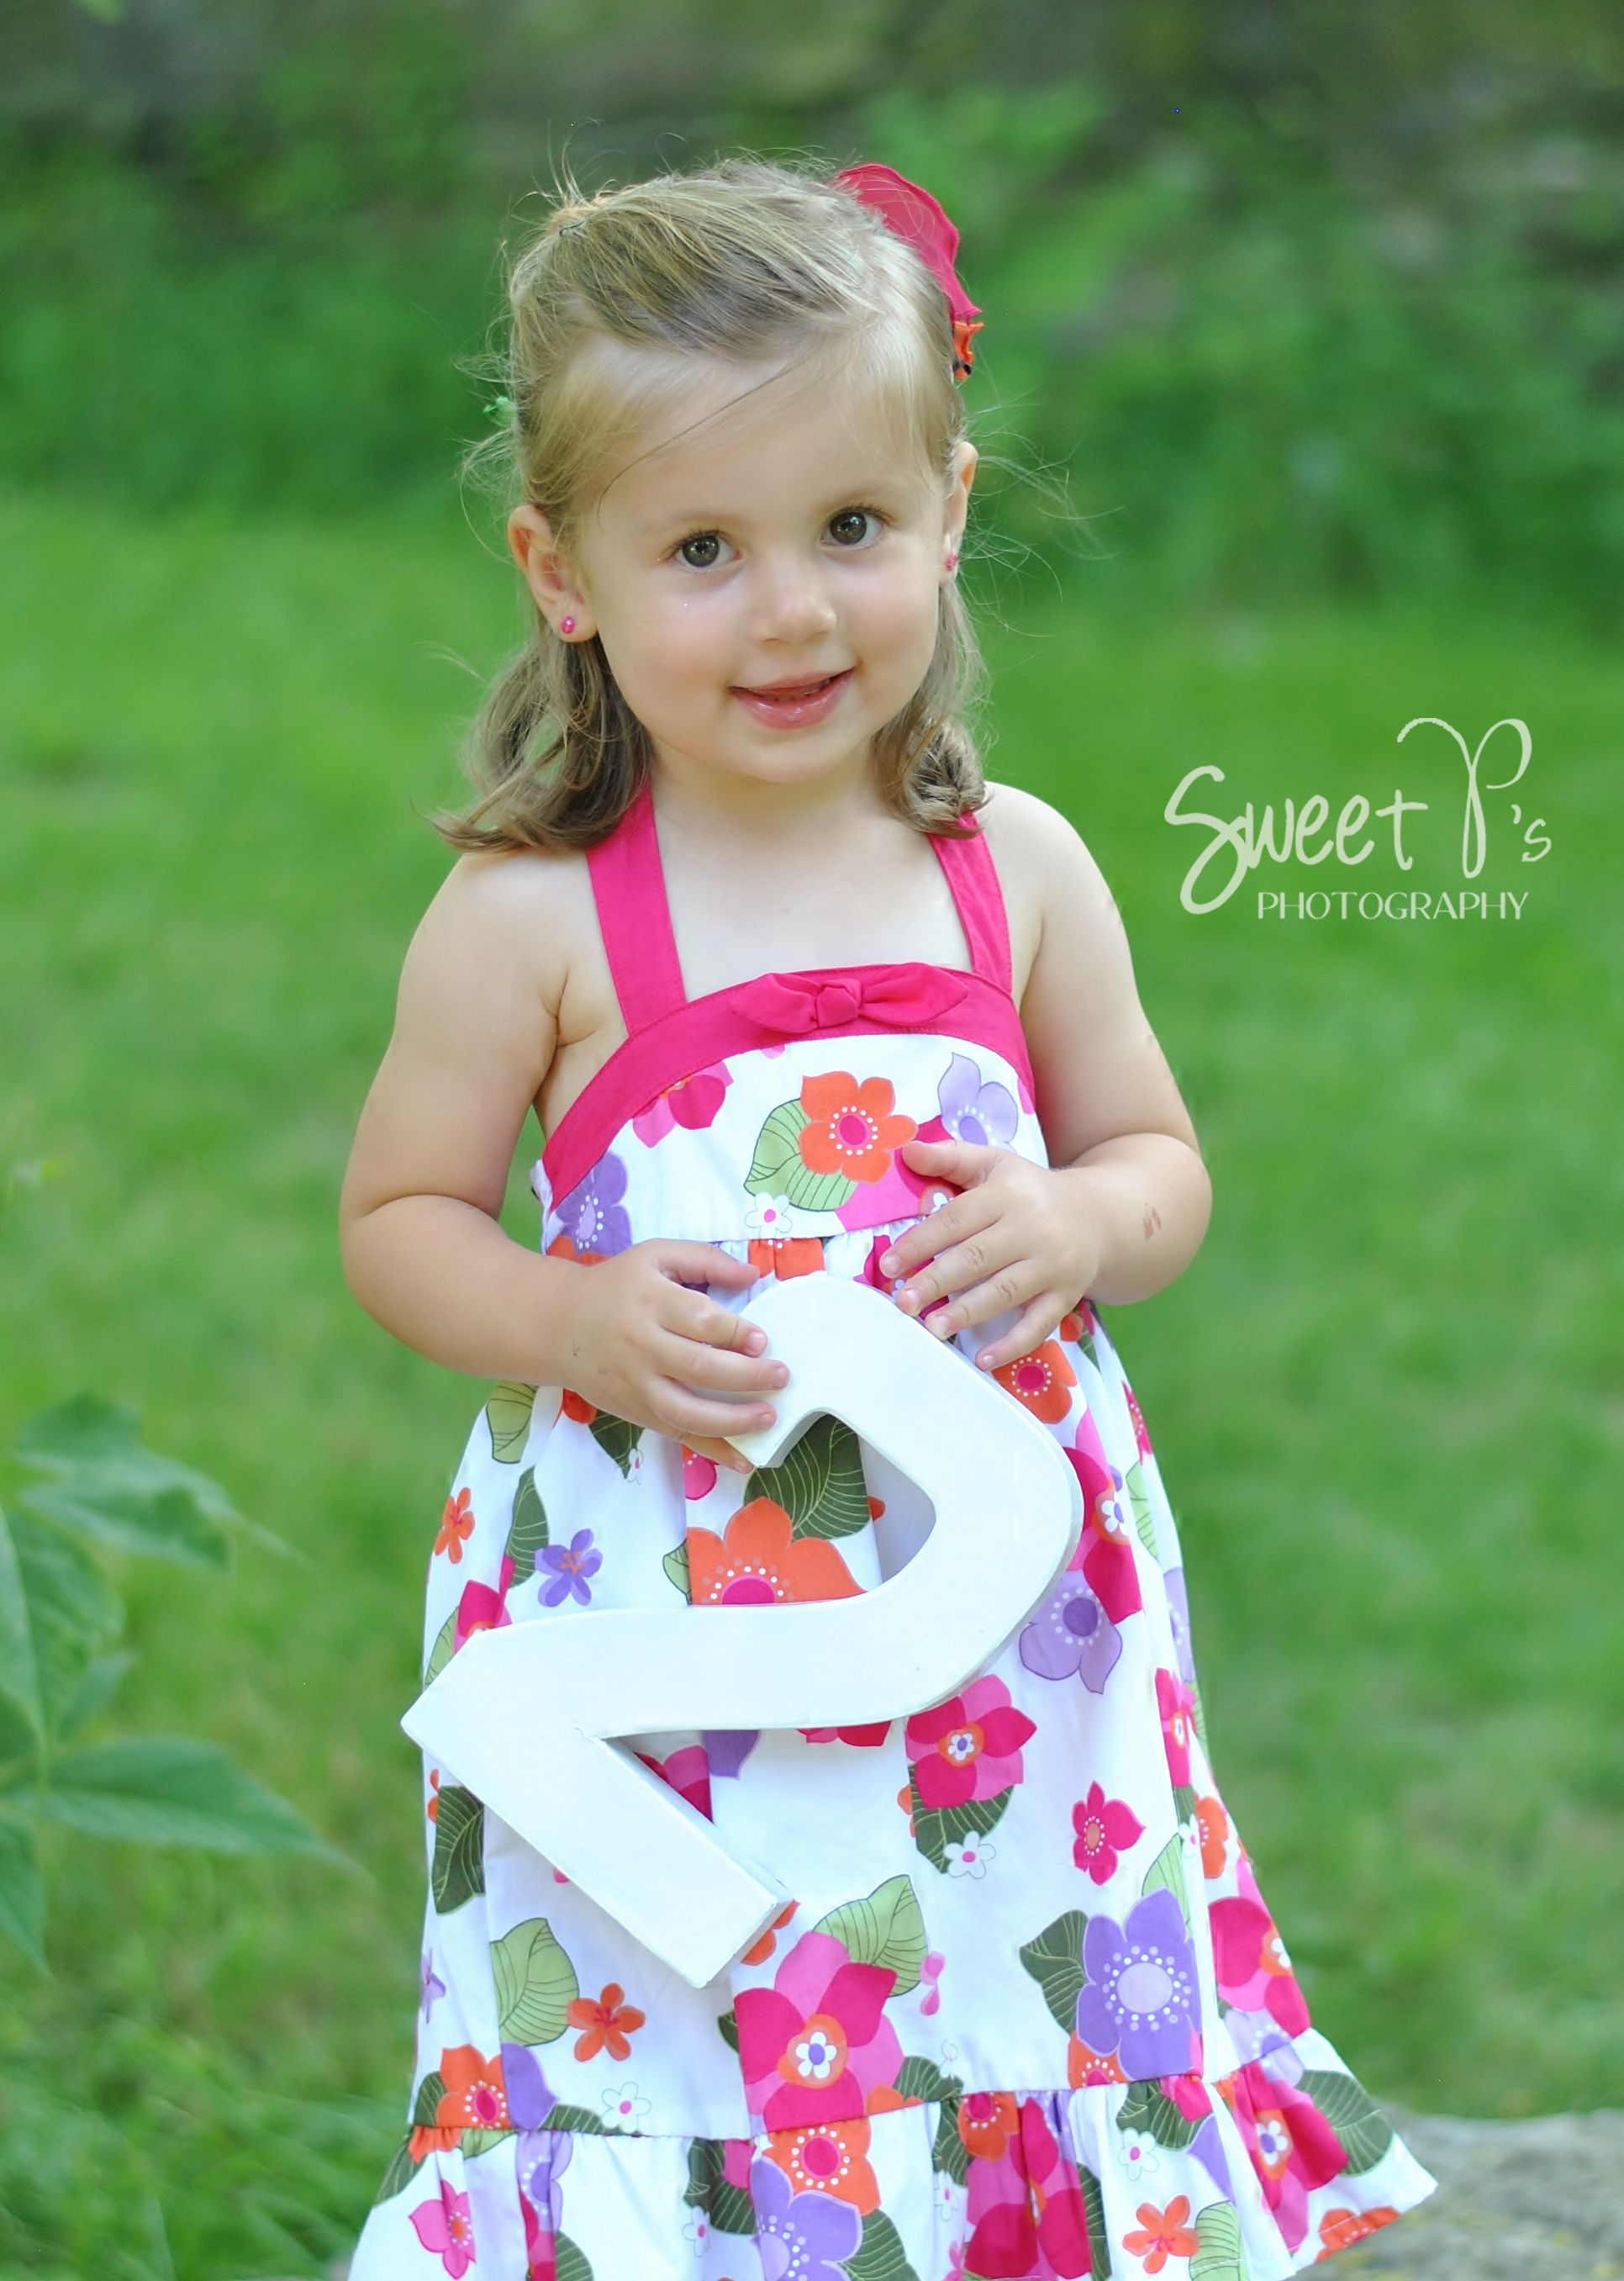 2 Year Old Little Girl Photography Sweet P S Photography